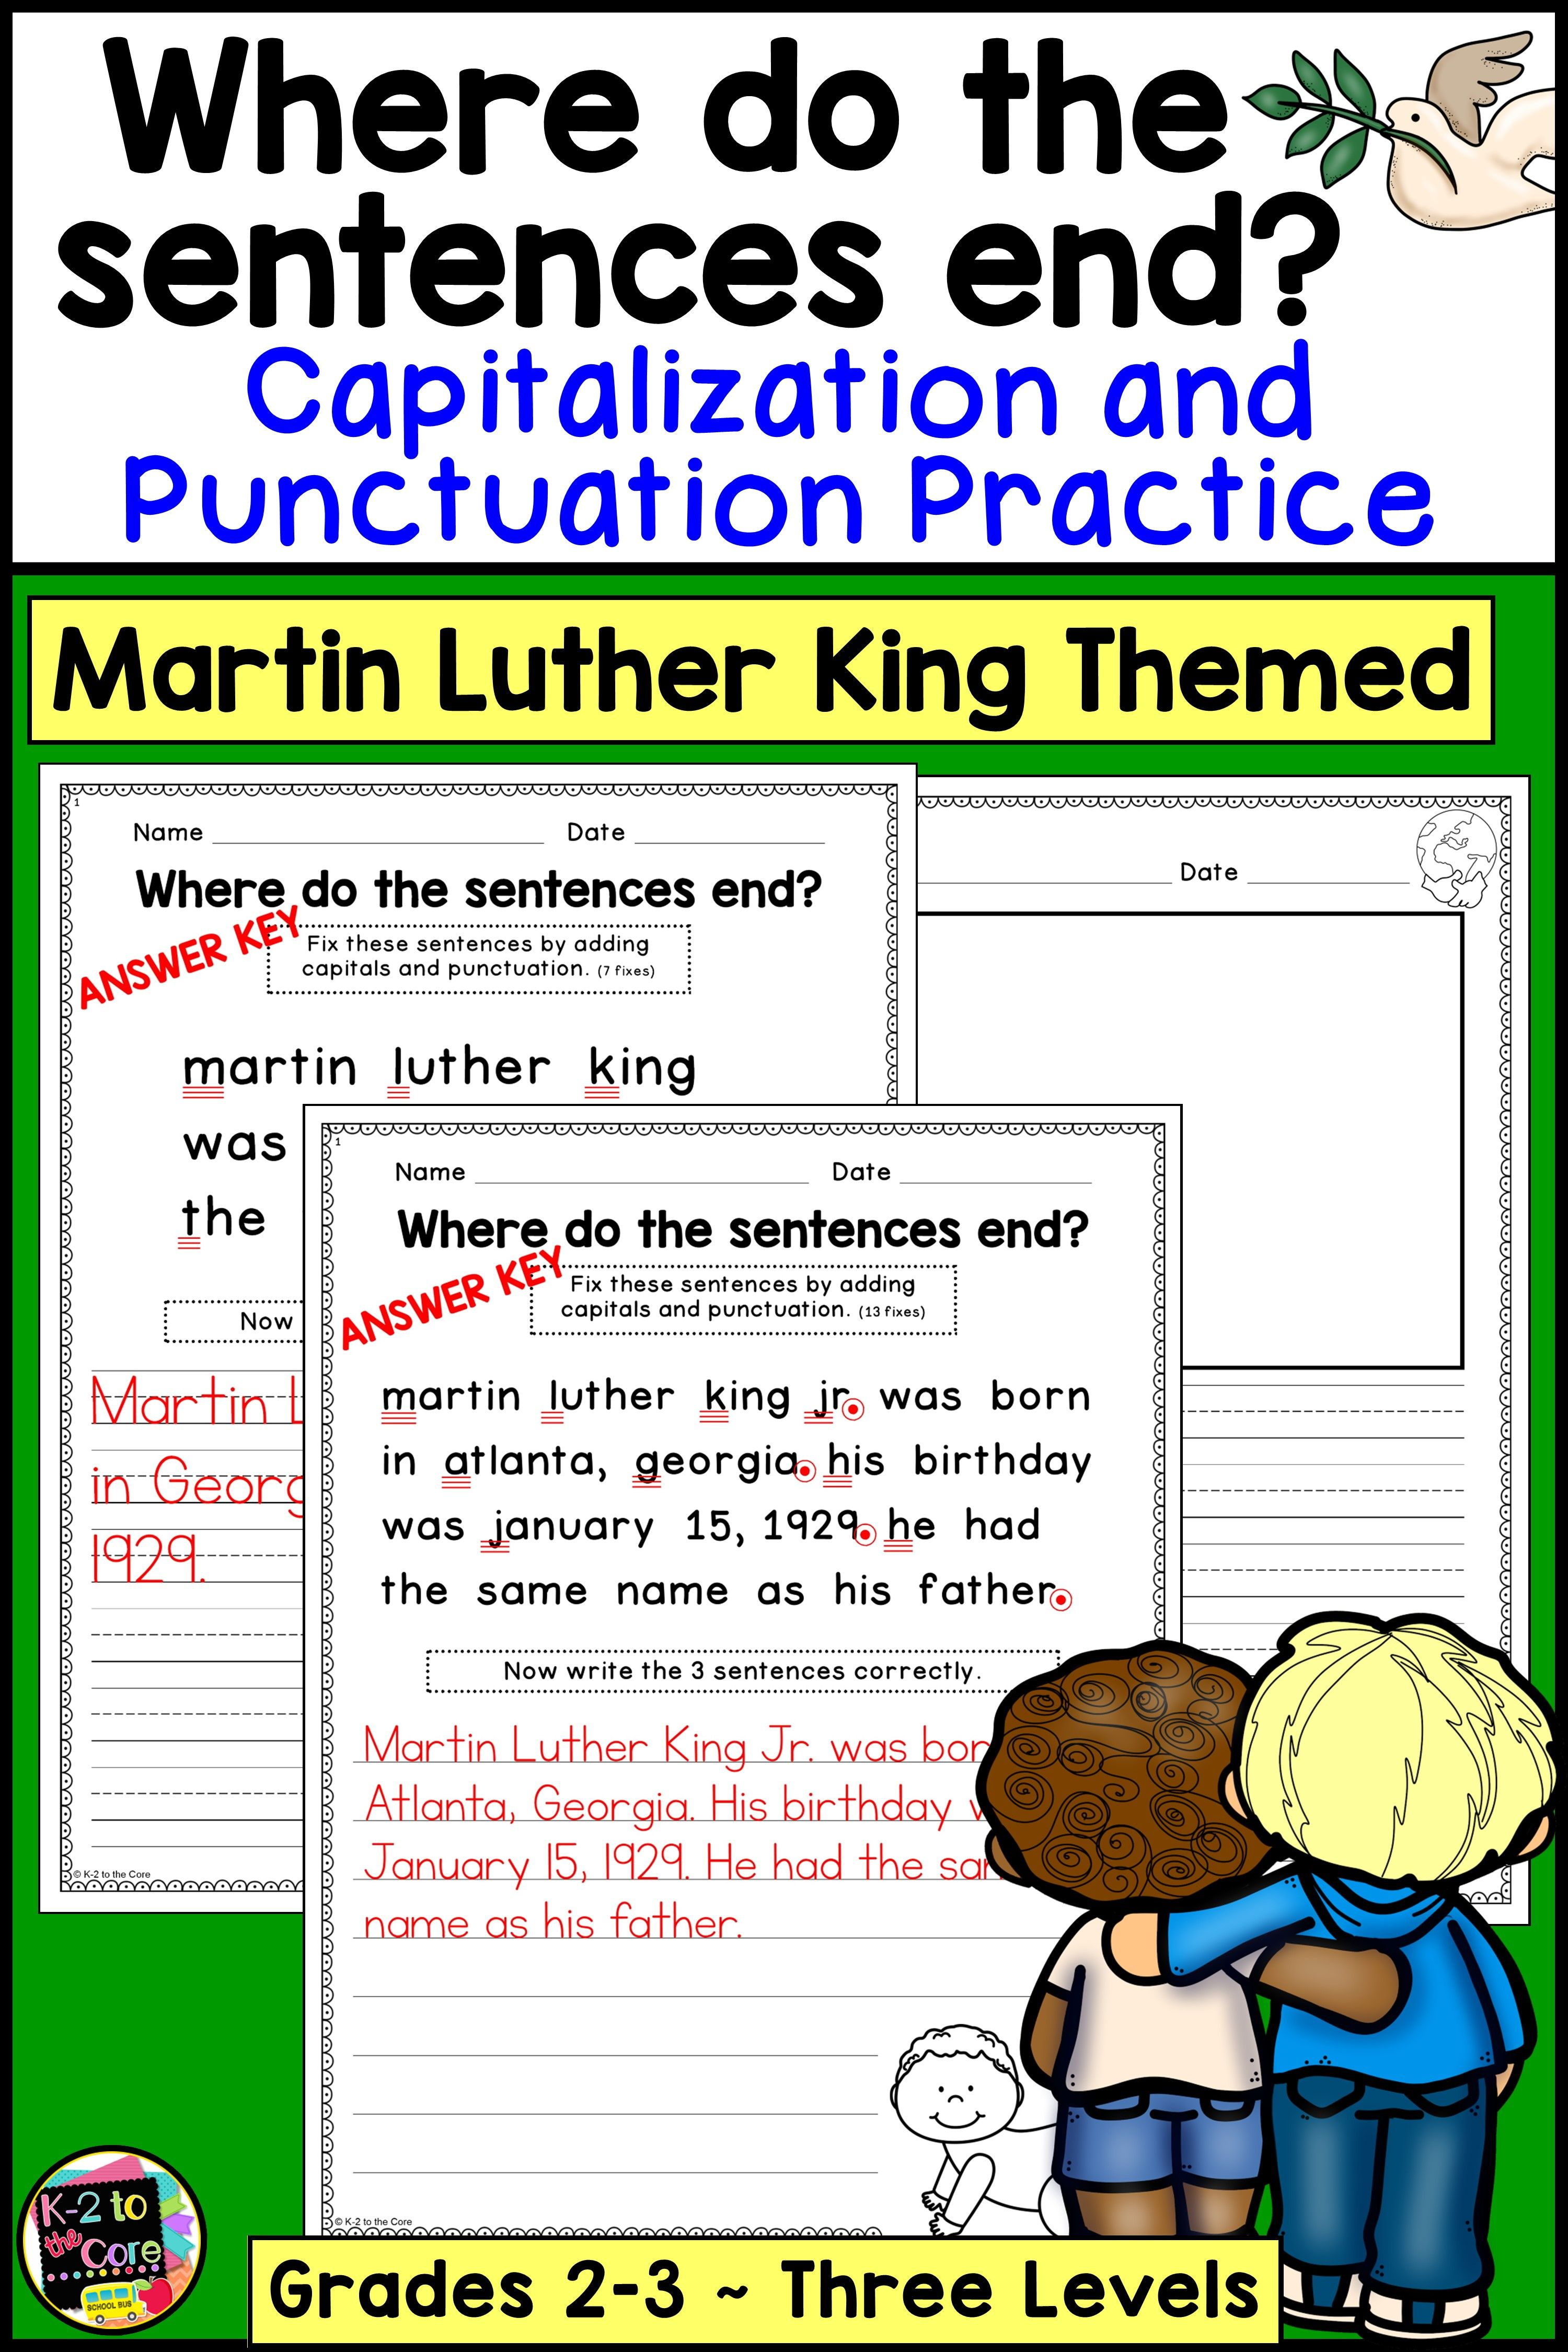 Martin Luther King Writing Activity With Capitalizati In 2021 Martin Luther King Jr Writing Activities Martin Luther King Writing Activities Martin Luther King Writing [ 4500 x 3000 Pixel ]